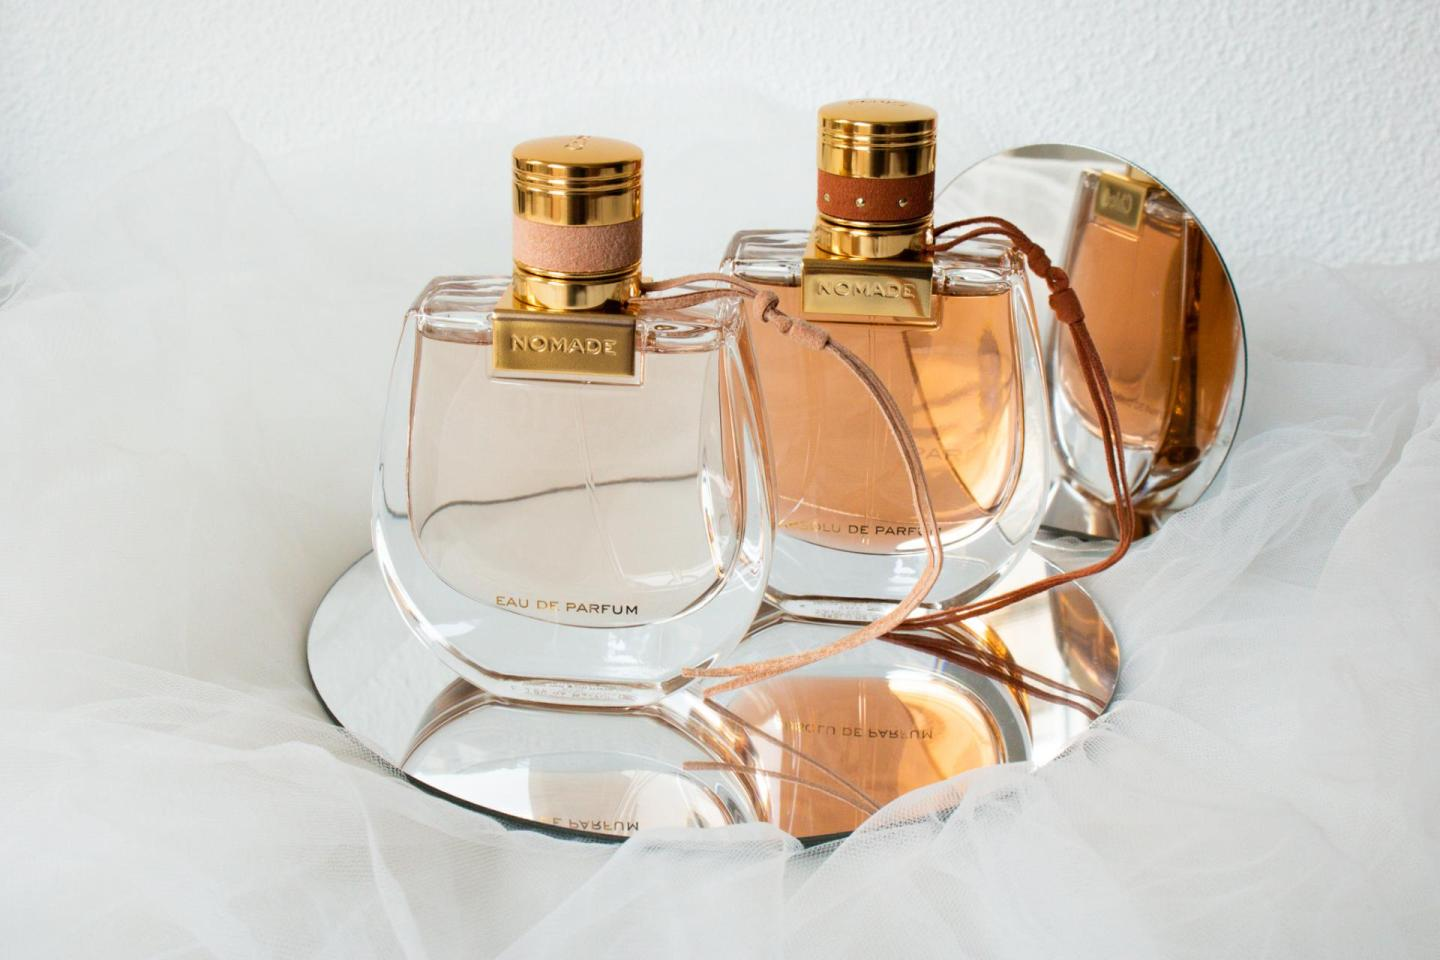 Chloé Nomade: Original VS Absolu